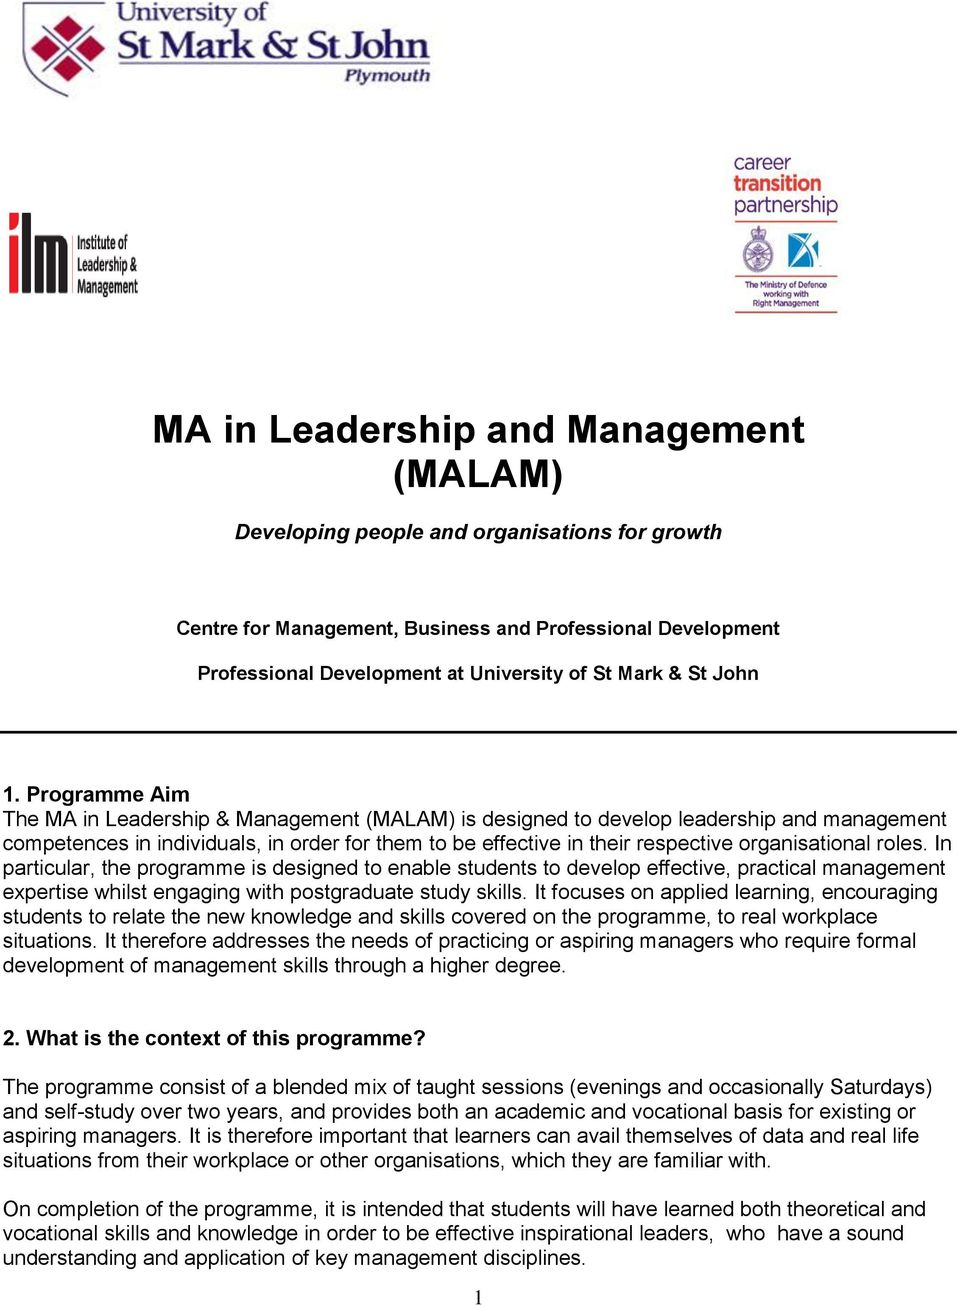 Programme Aim The MA in Leadership & Management (MALAM) is designed to develop leadership and management competences in individuals, in order for them to be effective in their respective